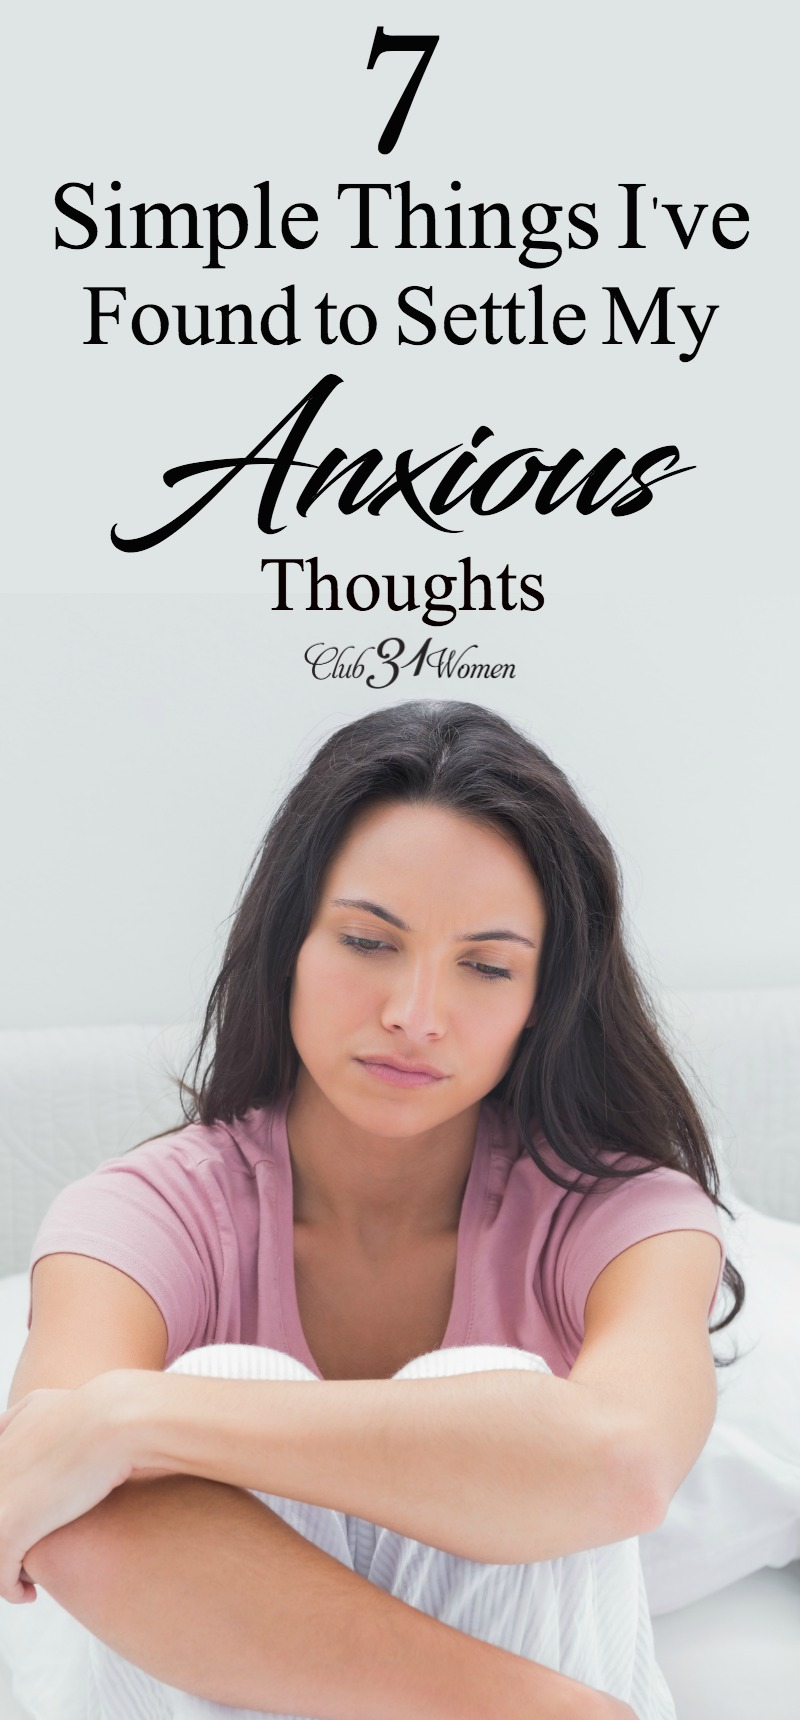 When anxious thoughts threaten to overtake your days, your nights, and everything in between, how can we settle those thoughts? Here are some tips...